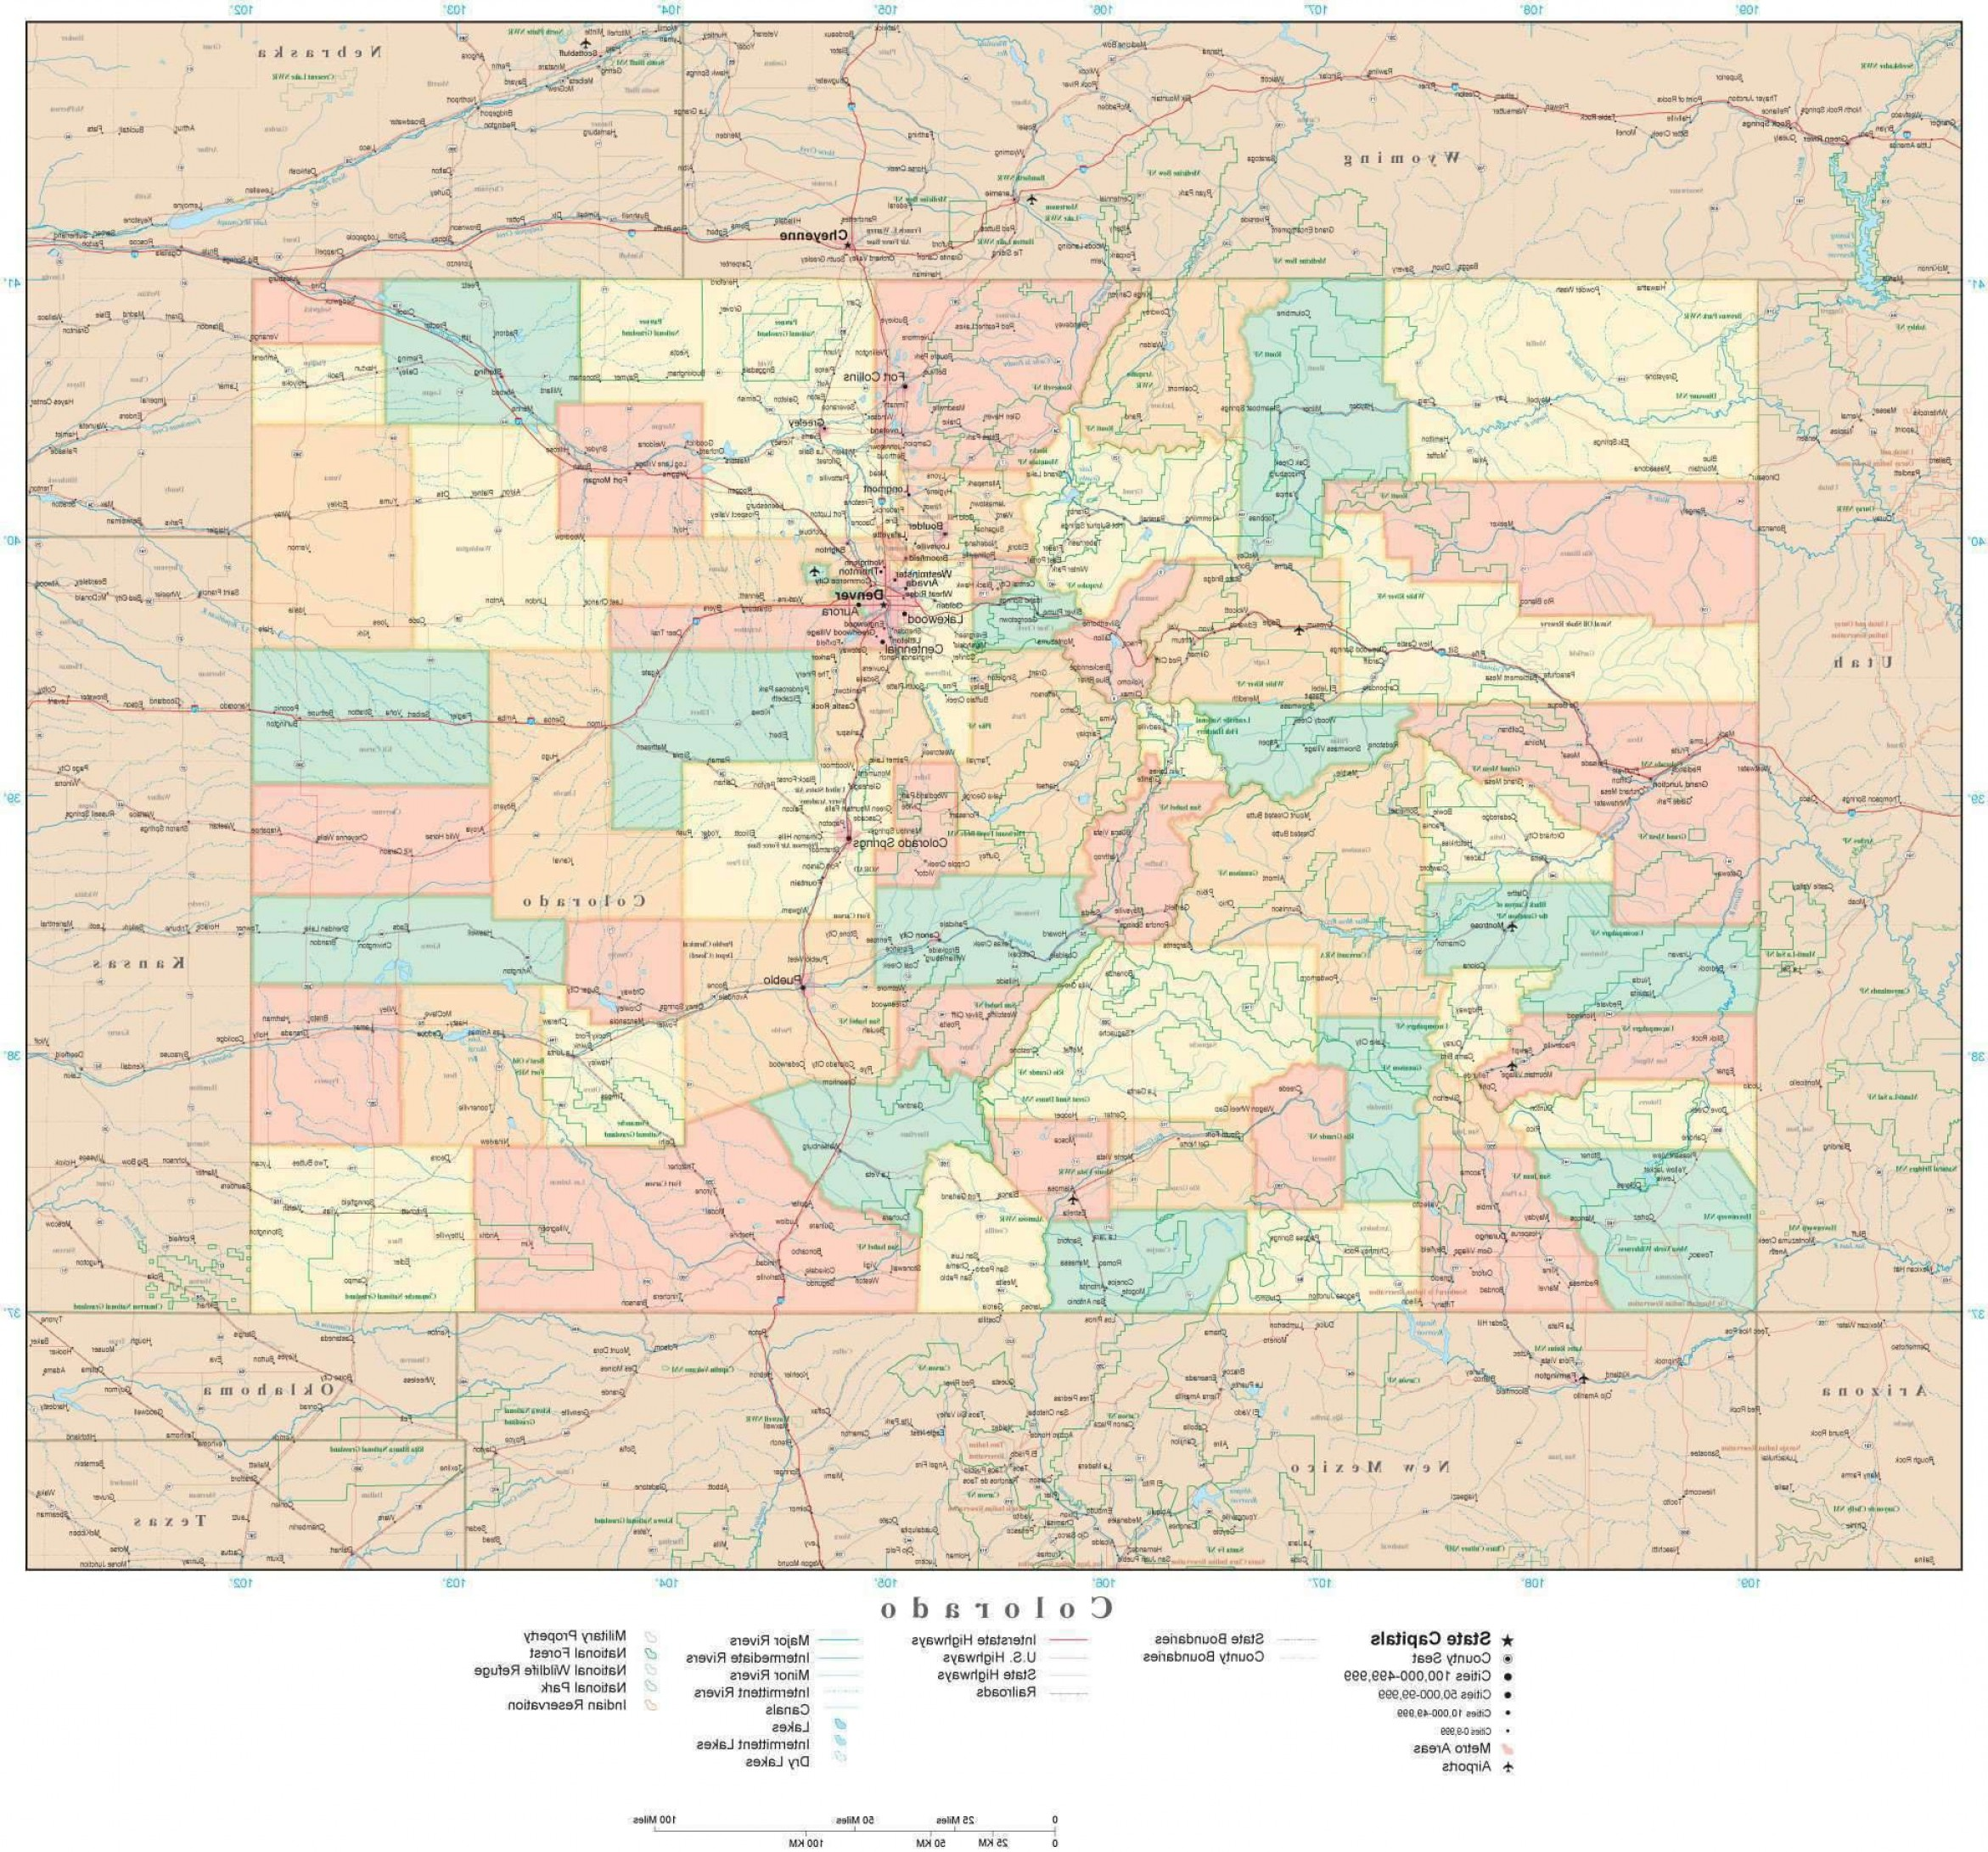 Colorado State Vector Maps: Poster Size High Detail Colorado Illustrator Vector State Map Co Usa